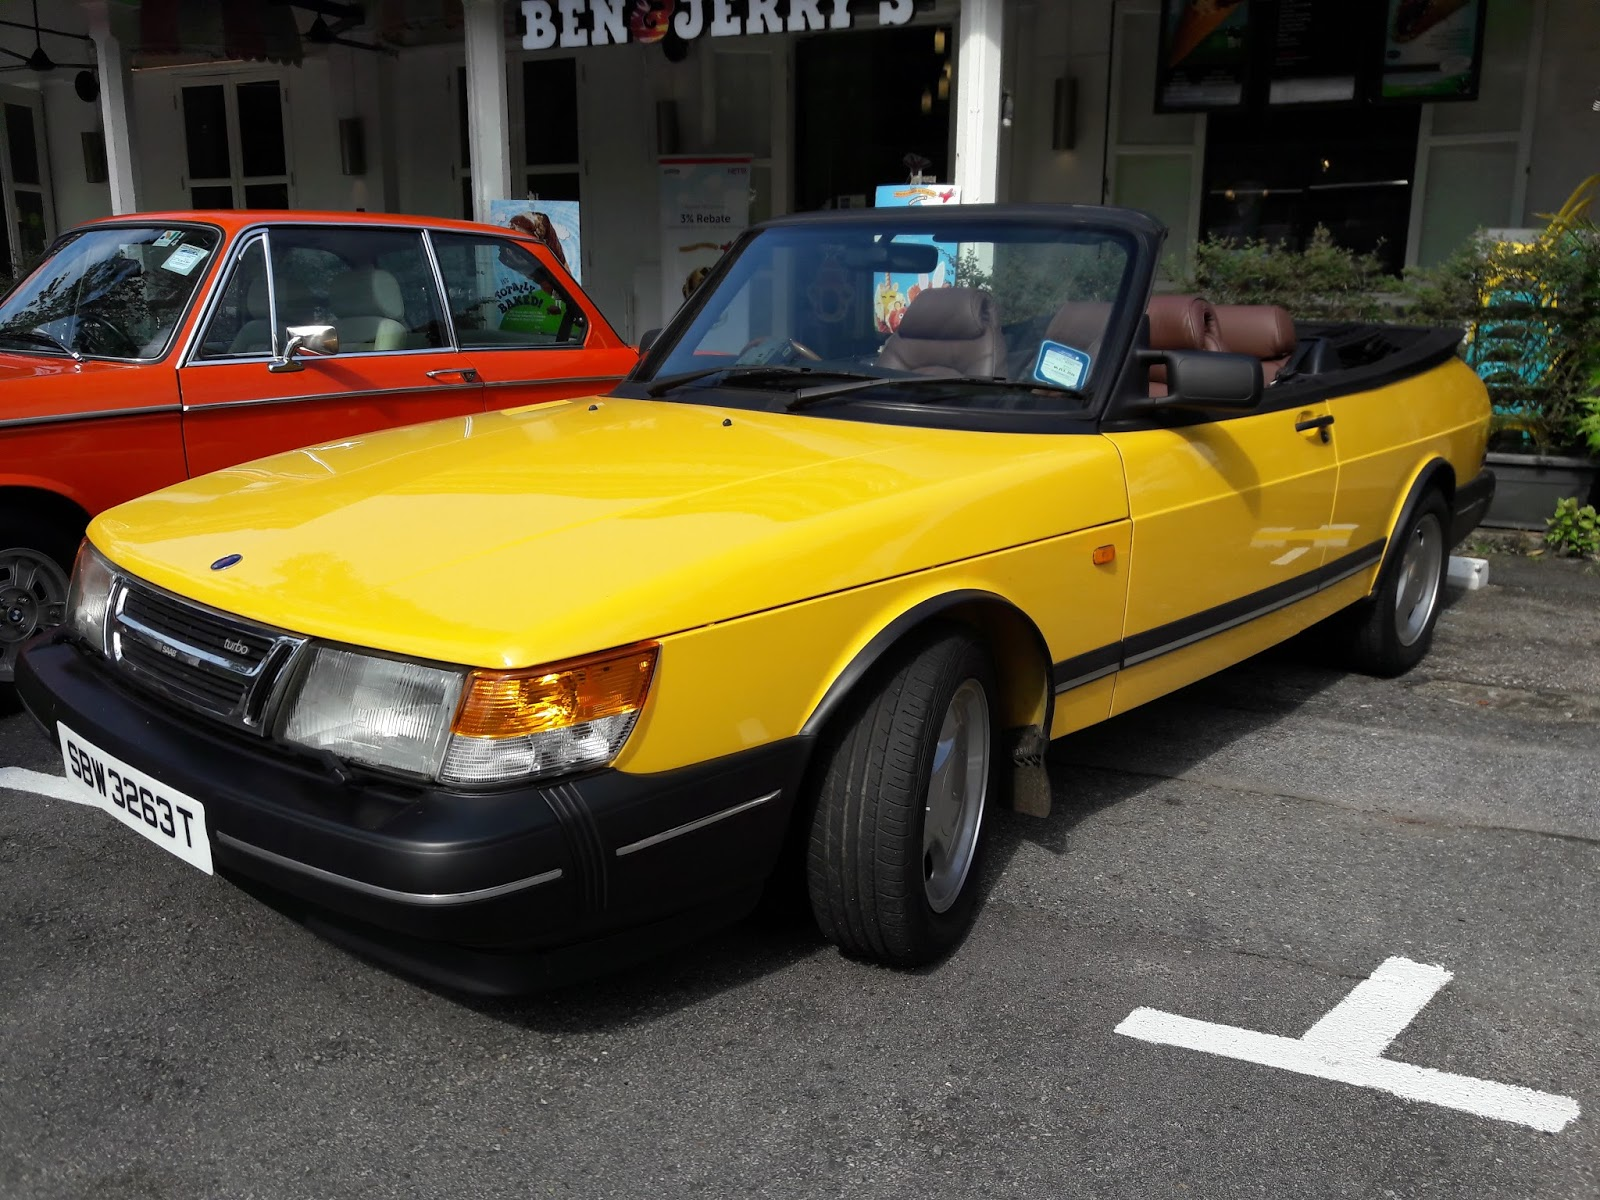 Singapore Vintage and Classic Cars: More than an old car #31: Saab 900